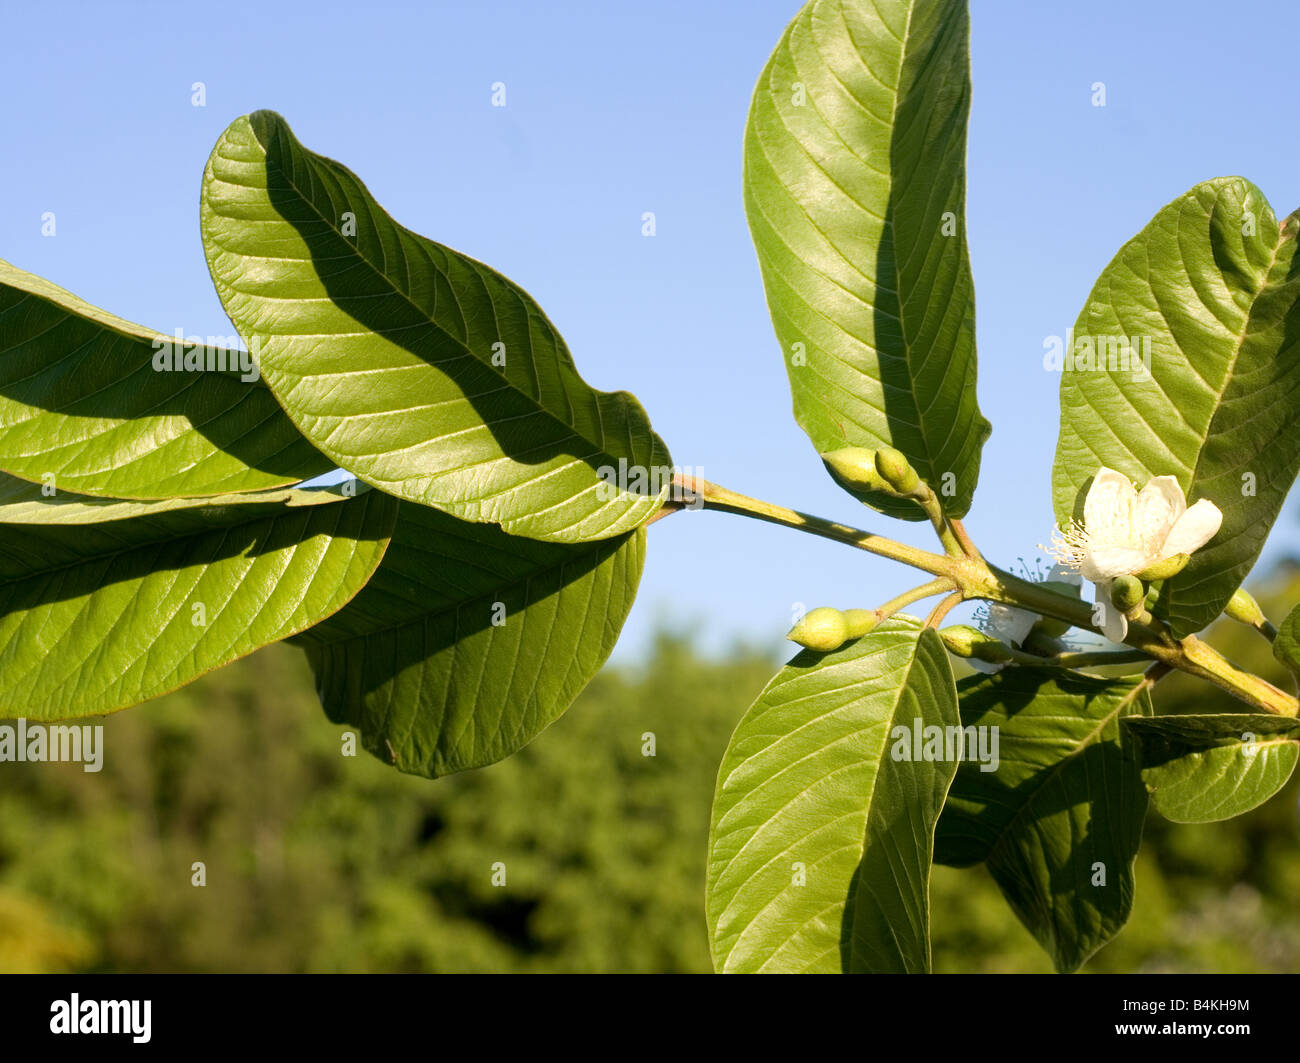 Guava Tree Leaves Images